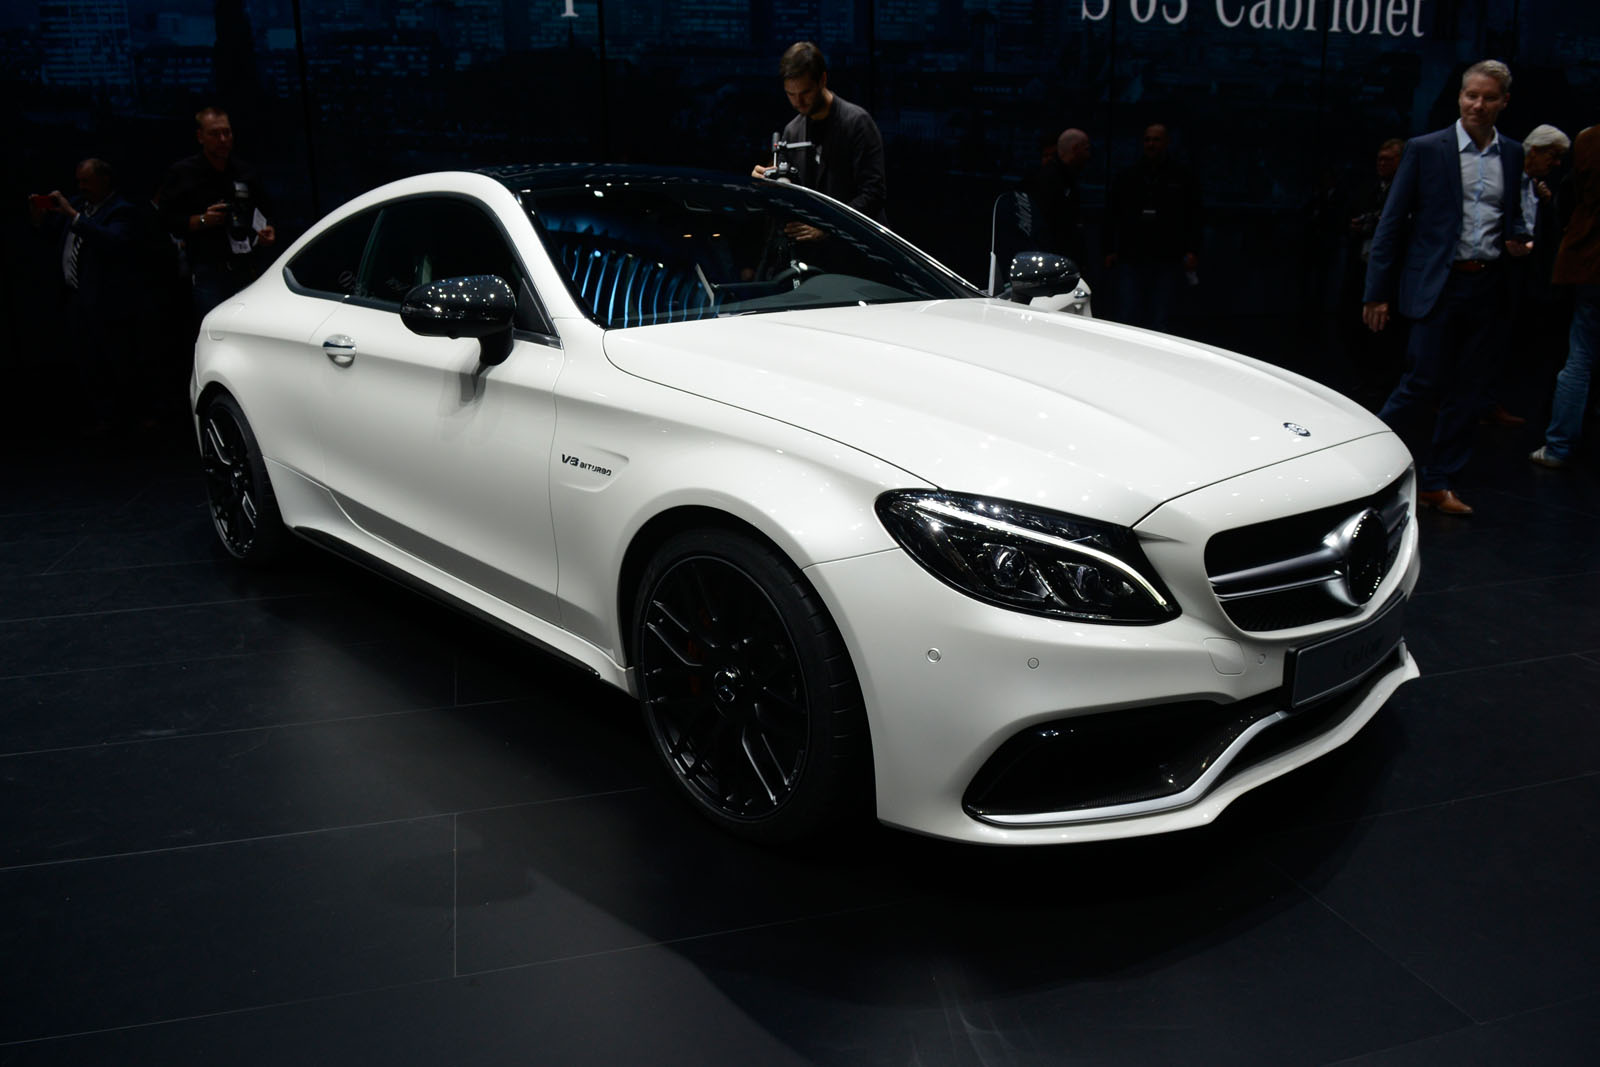 2015 c class coupe black images for Mercedes benz c330